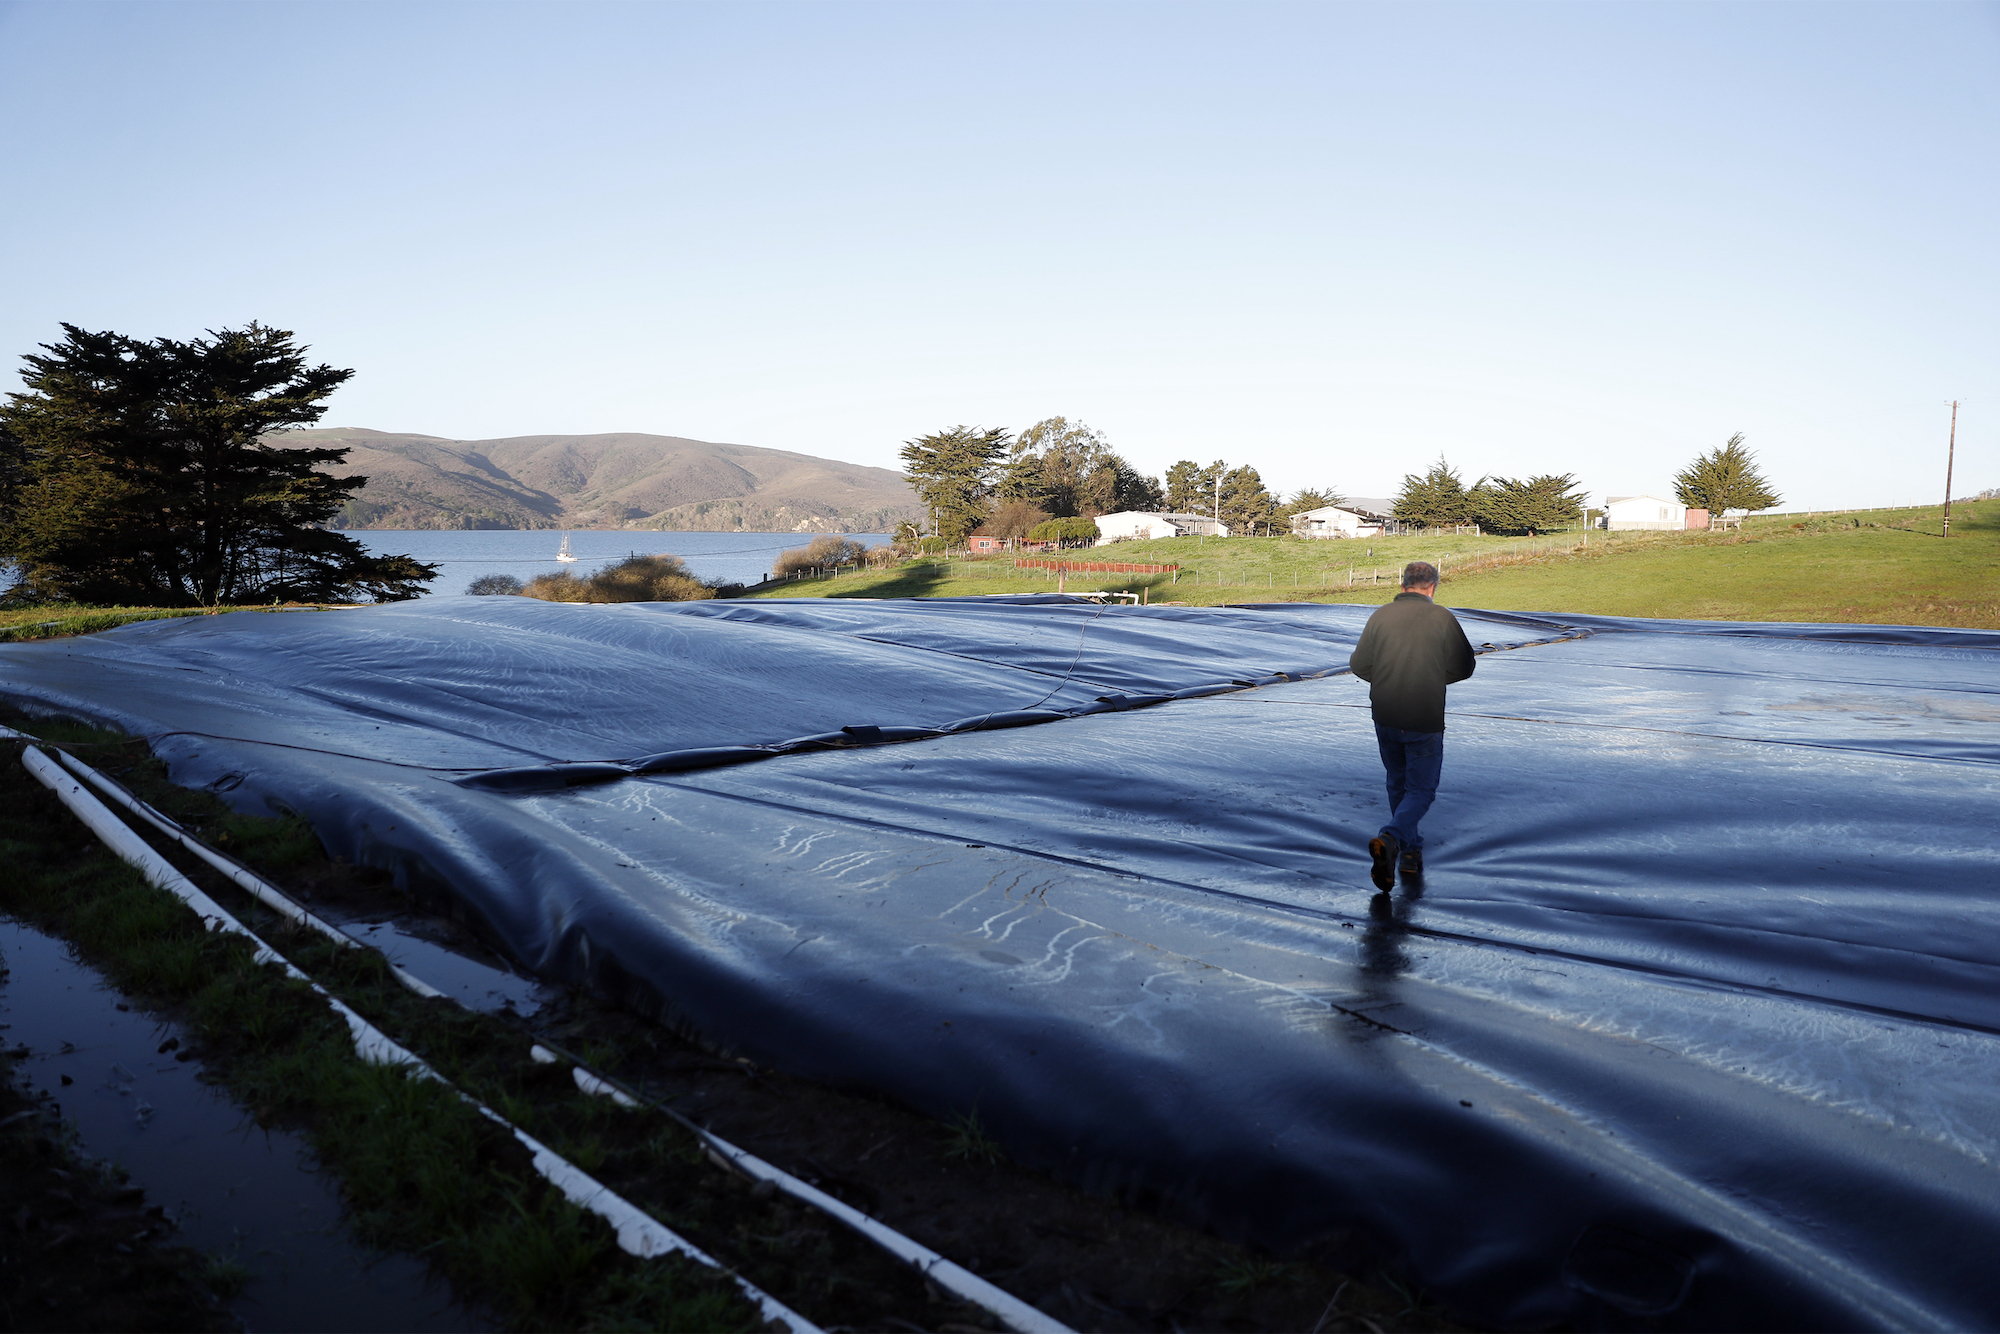 A man dressed with black plants and a black jacket walks over a giant black plastic bag, where methane is being stored. You can see mountains in the background, a clear, blue sky, and a couple of trees.